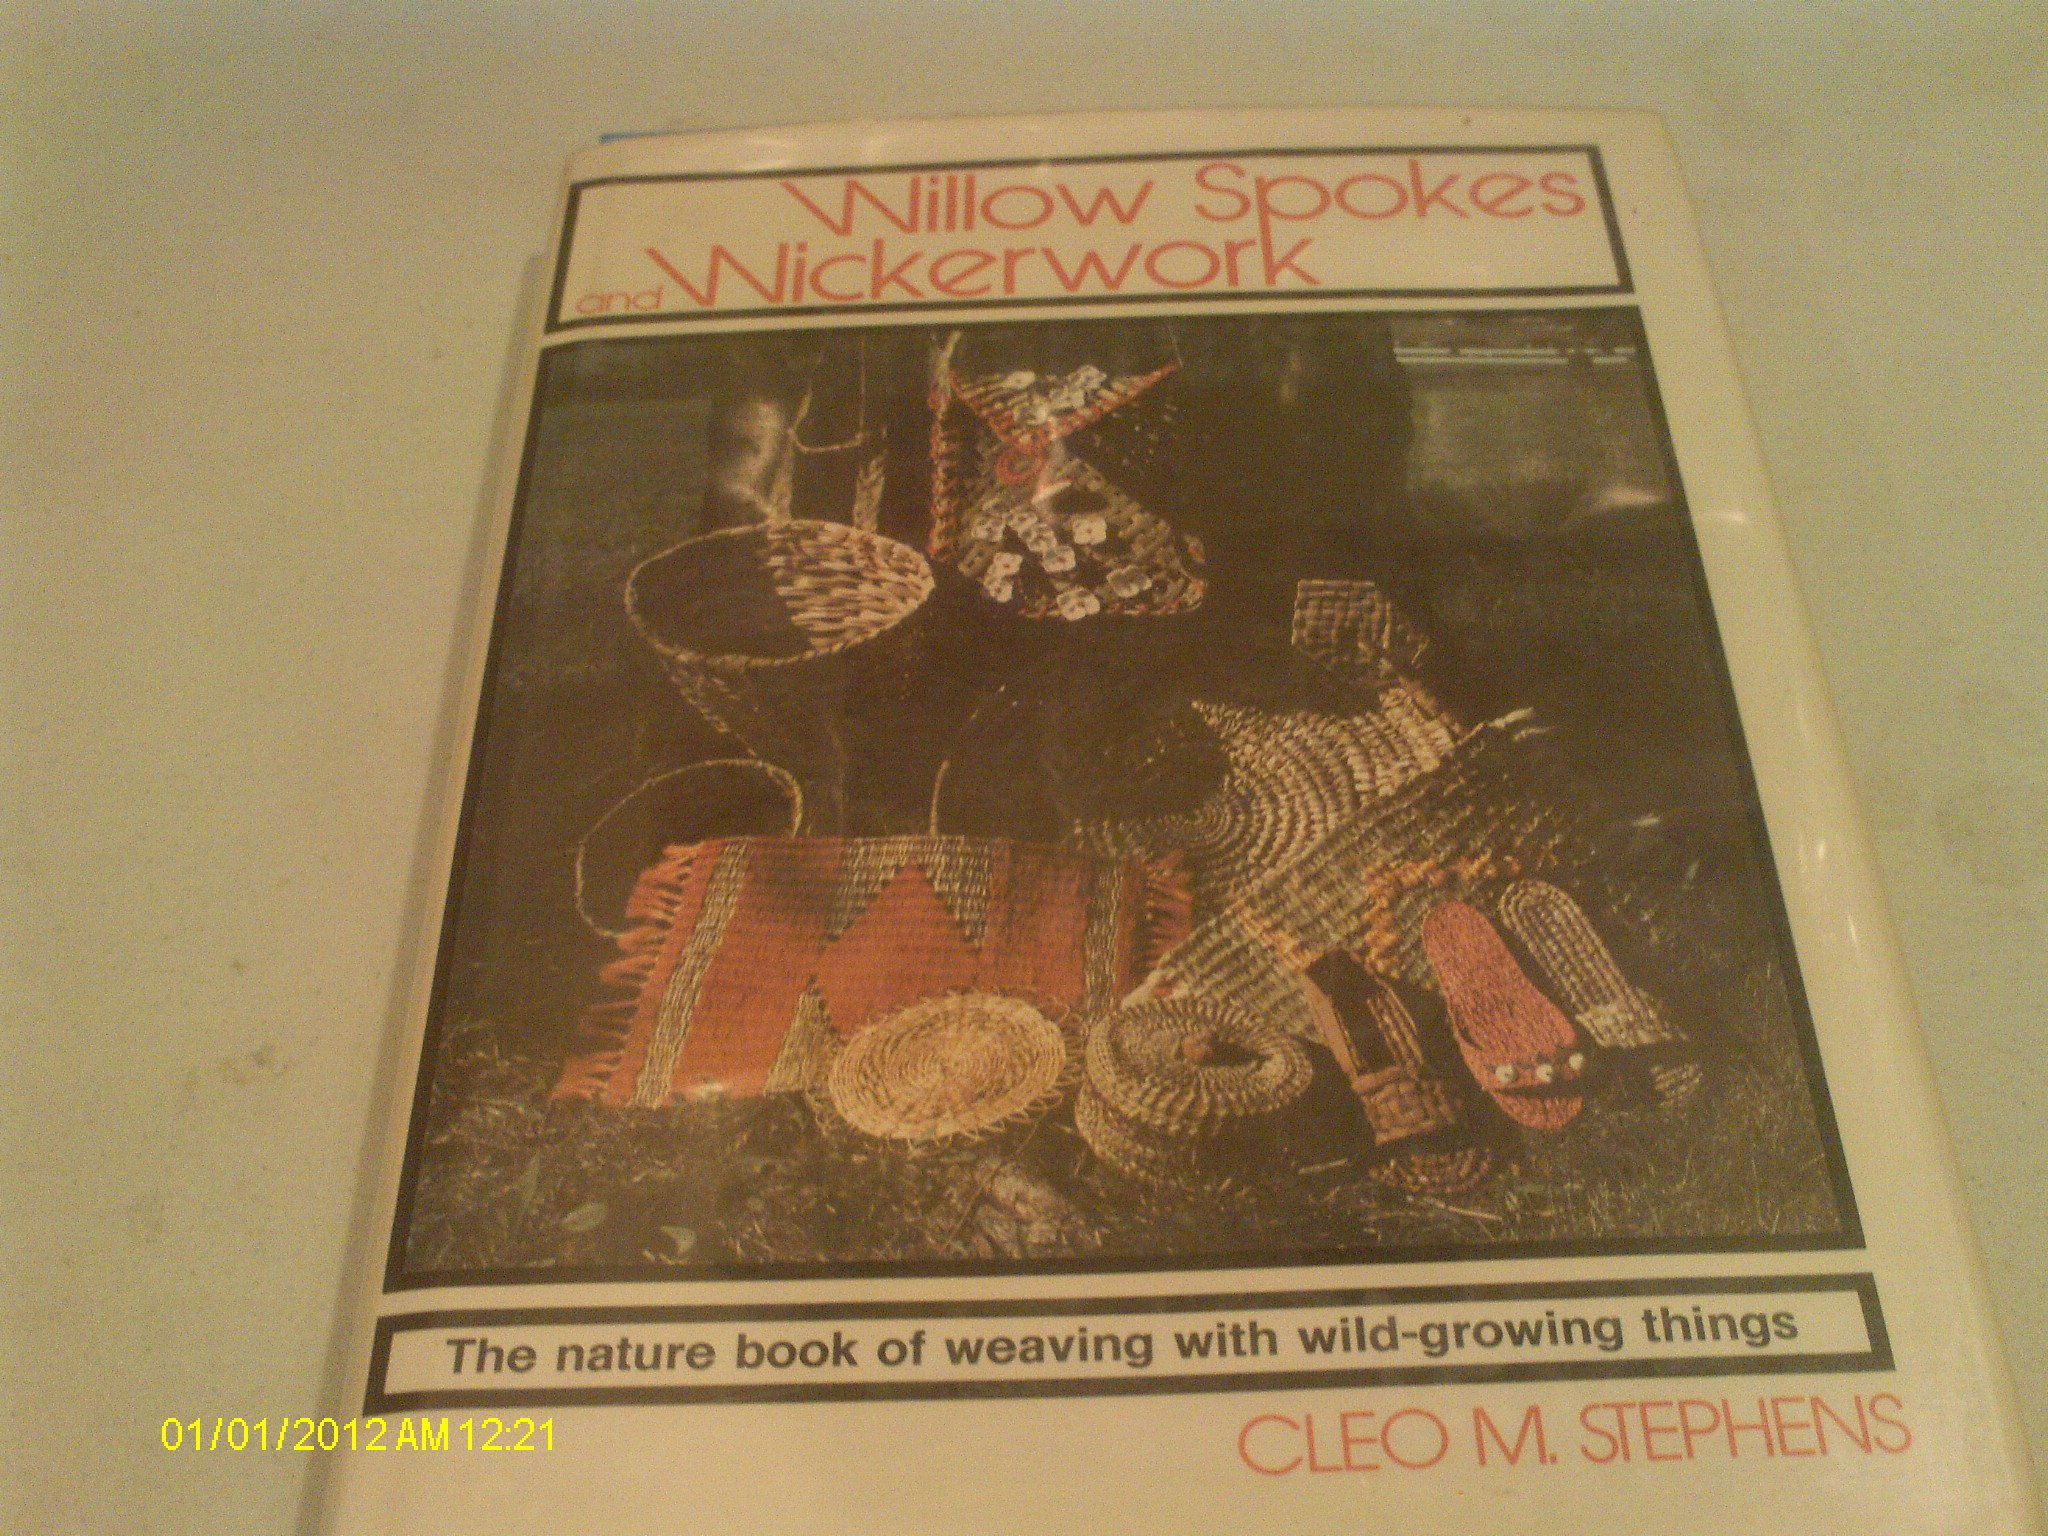 Willow Spokes and Wickerwork: The Nature Book of Weaving With Wild-Growing Things